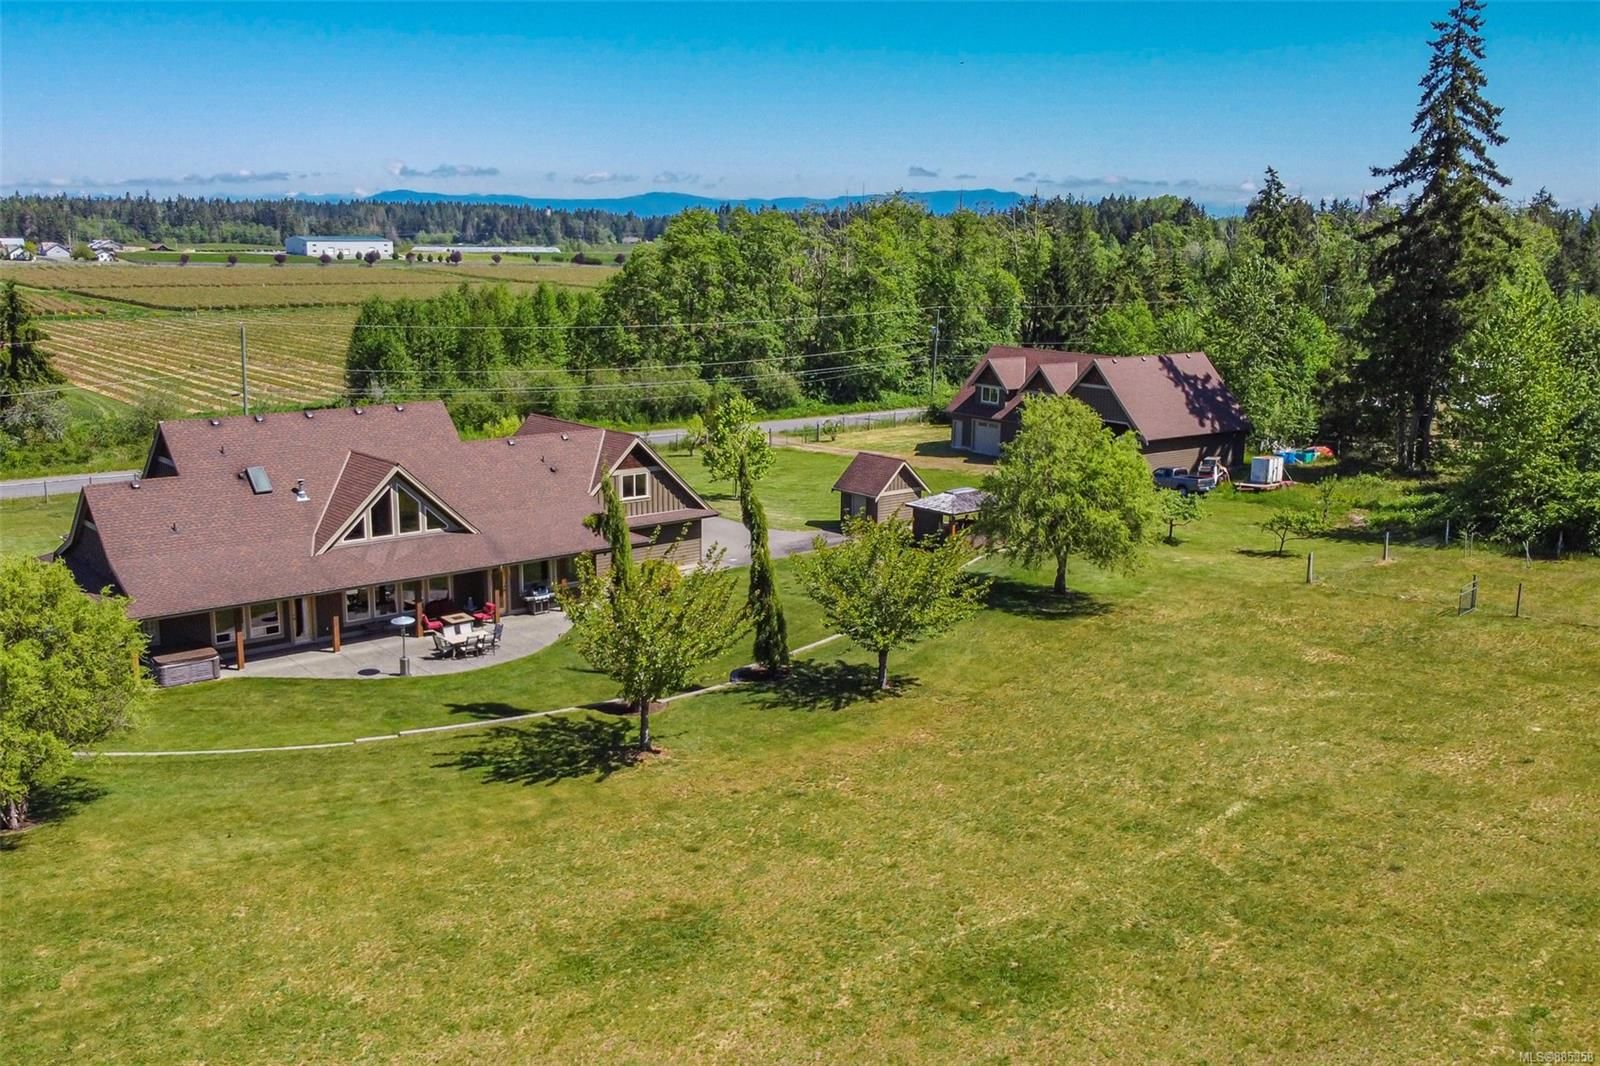 Photo 69: Photos: 2850 Peters Rd in : PQ Qualicum Beach House for sale (Parksville/Qualicum)  : MLS®# 885358